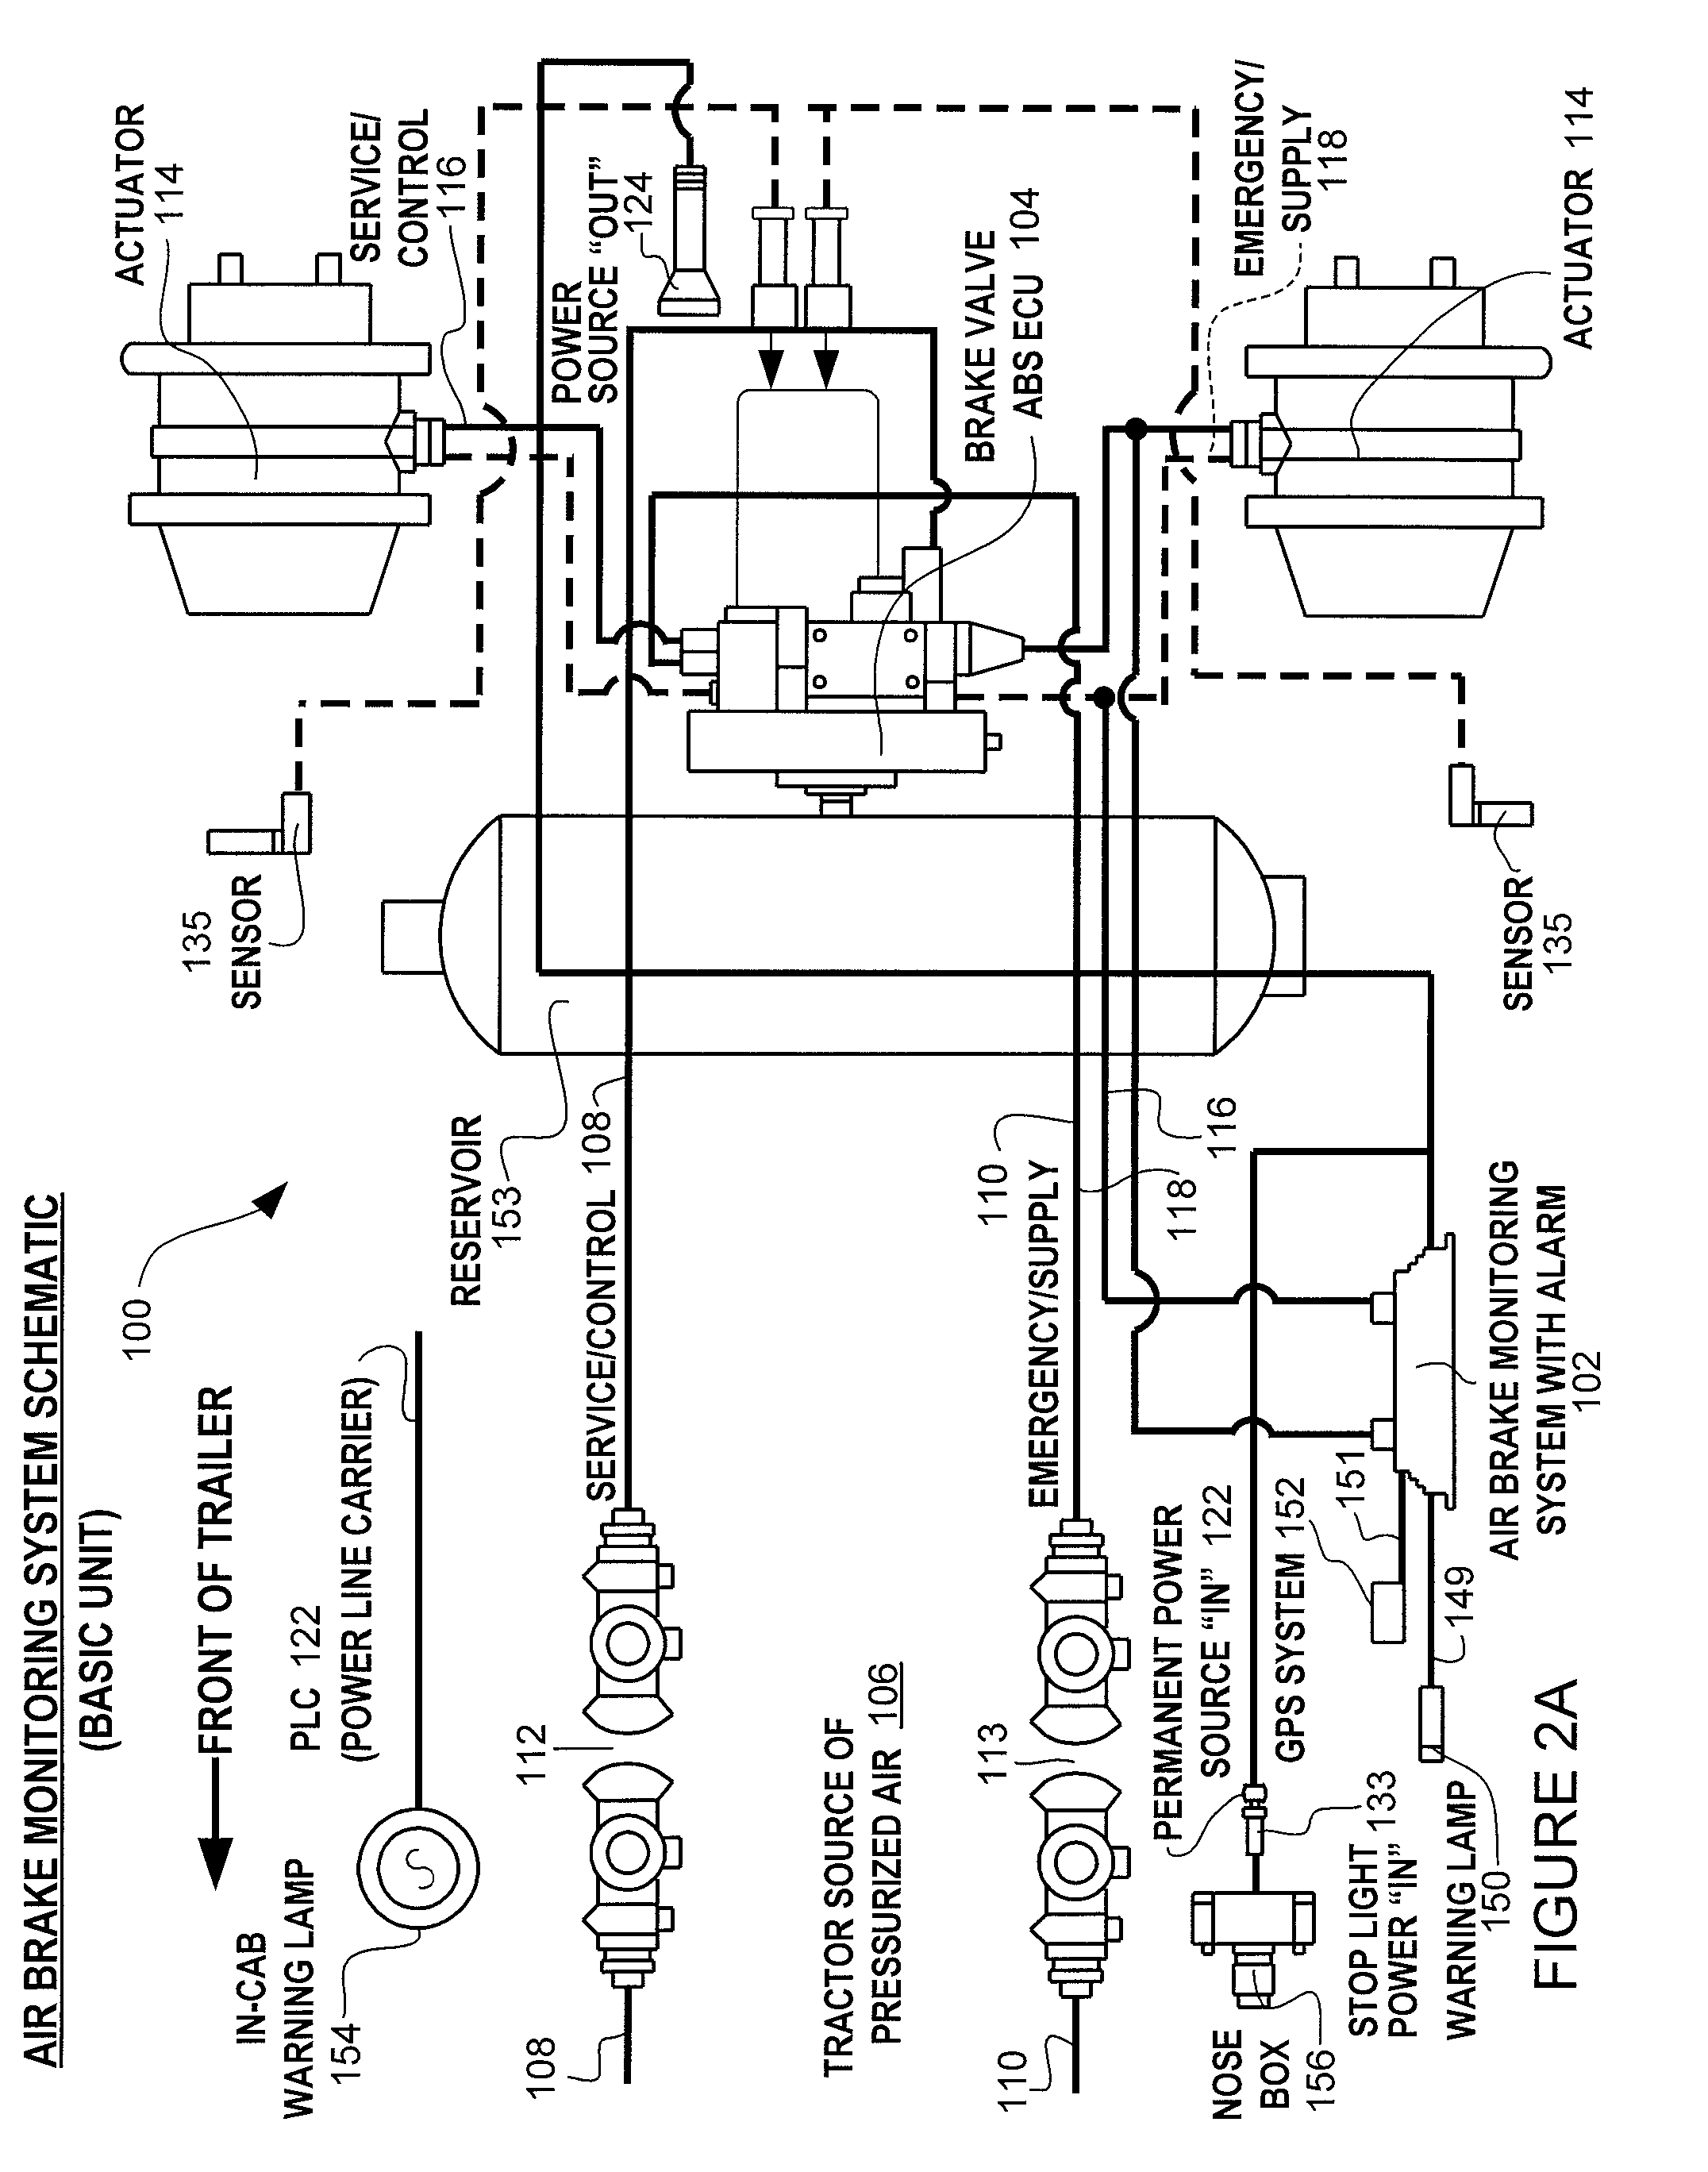 small resolution of 84 buick riviera stereo wiring diagram 38 wiring diagram 1995 buick regal stereo wiring diagram